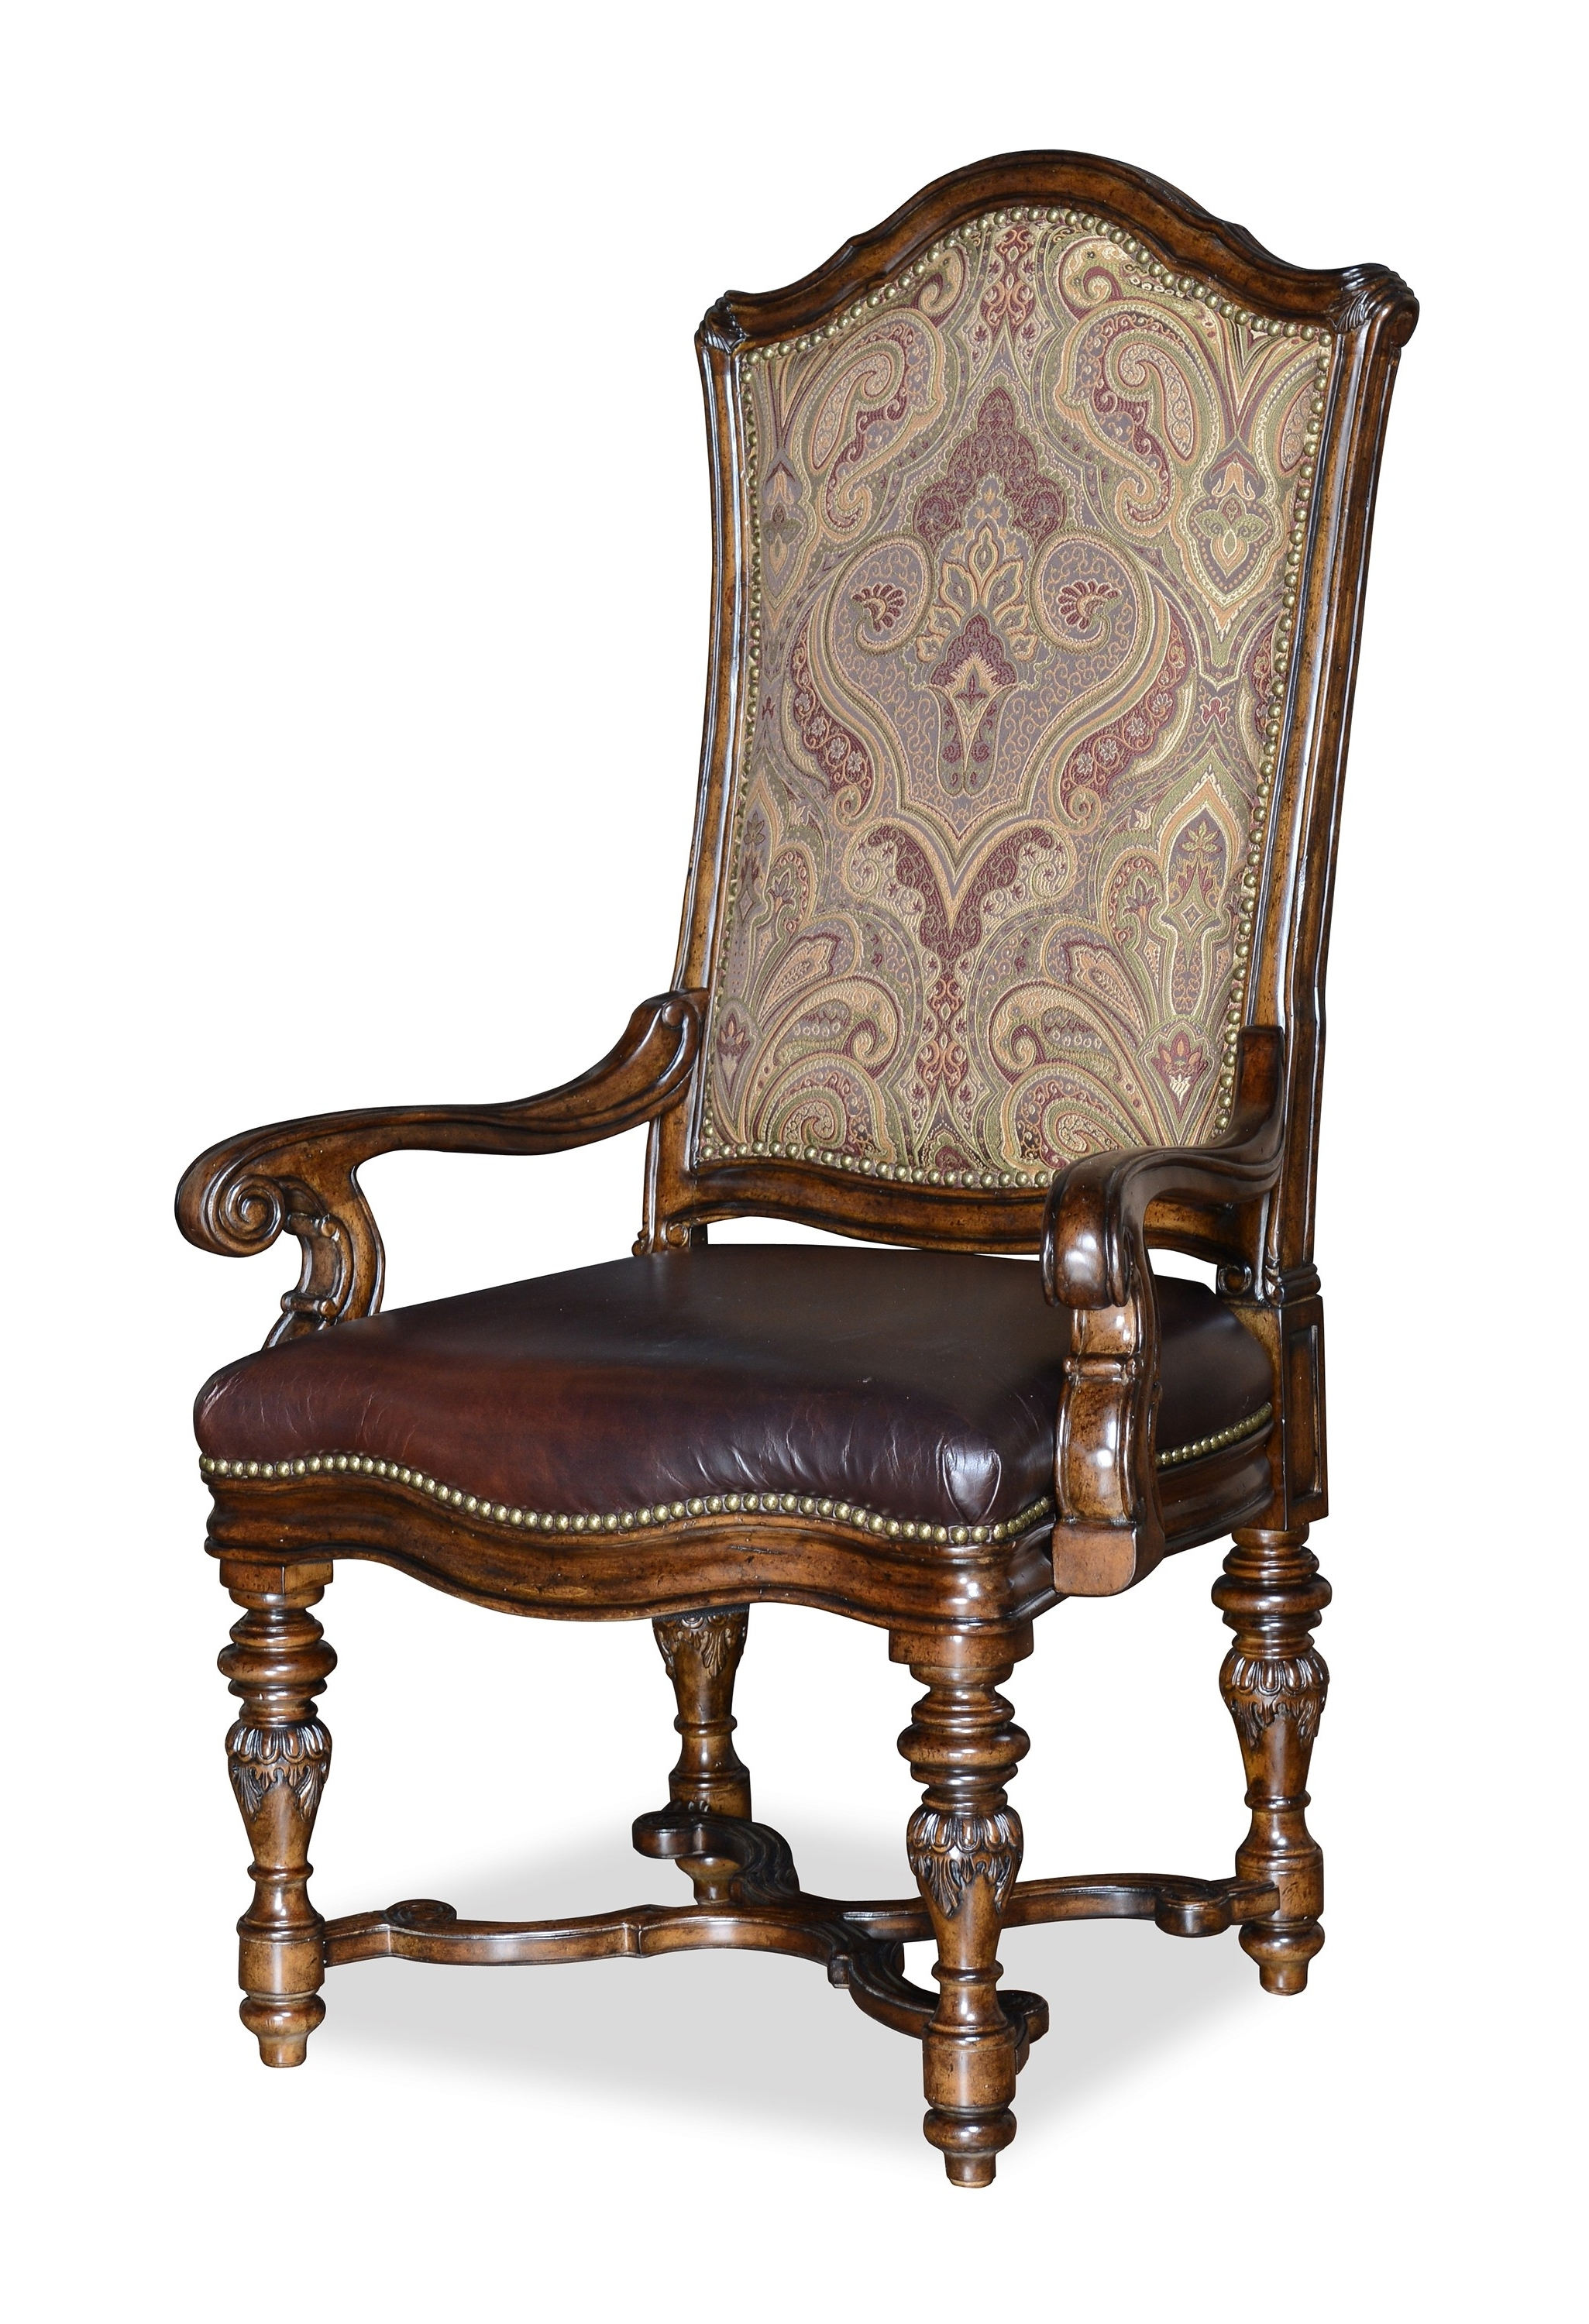 Valencia Side Chair Pertaining To Most Current Valencia Side Chairs With Upholstered Seat (View 15 of 20)